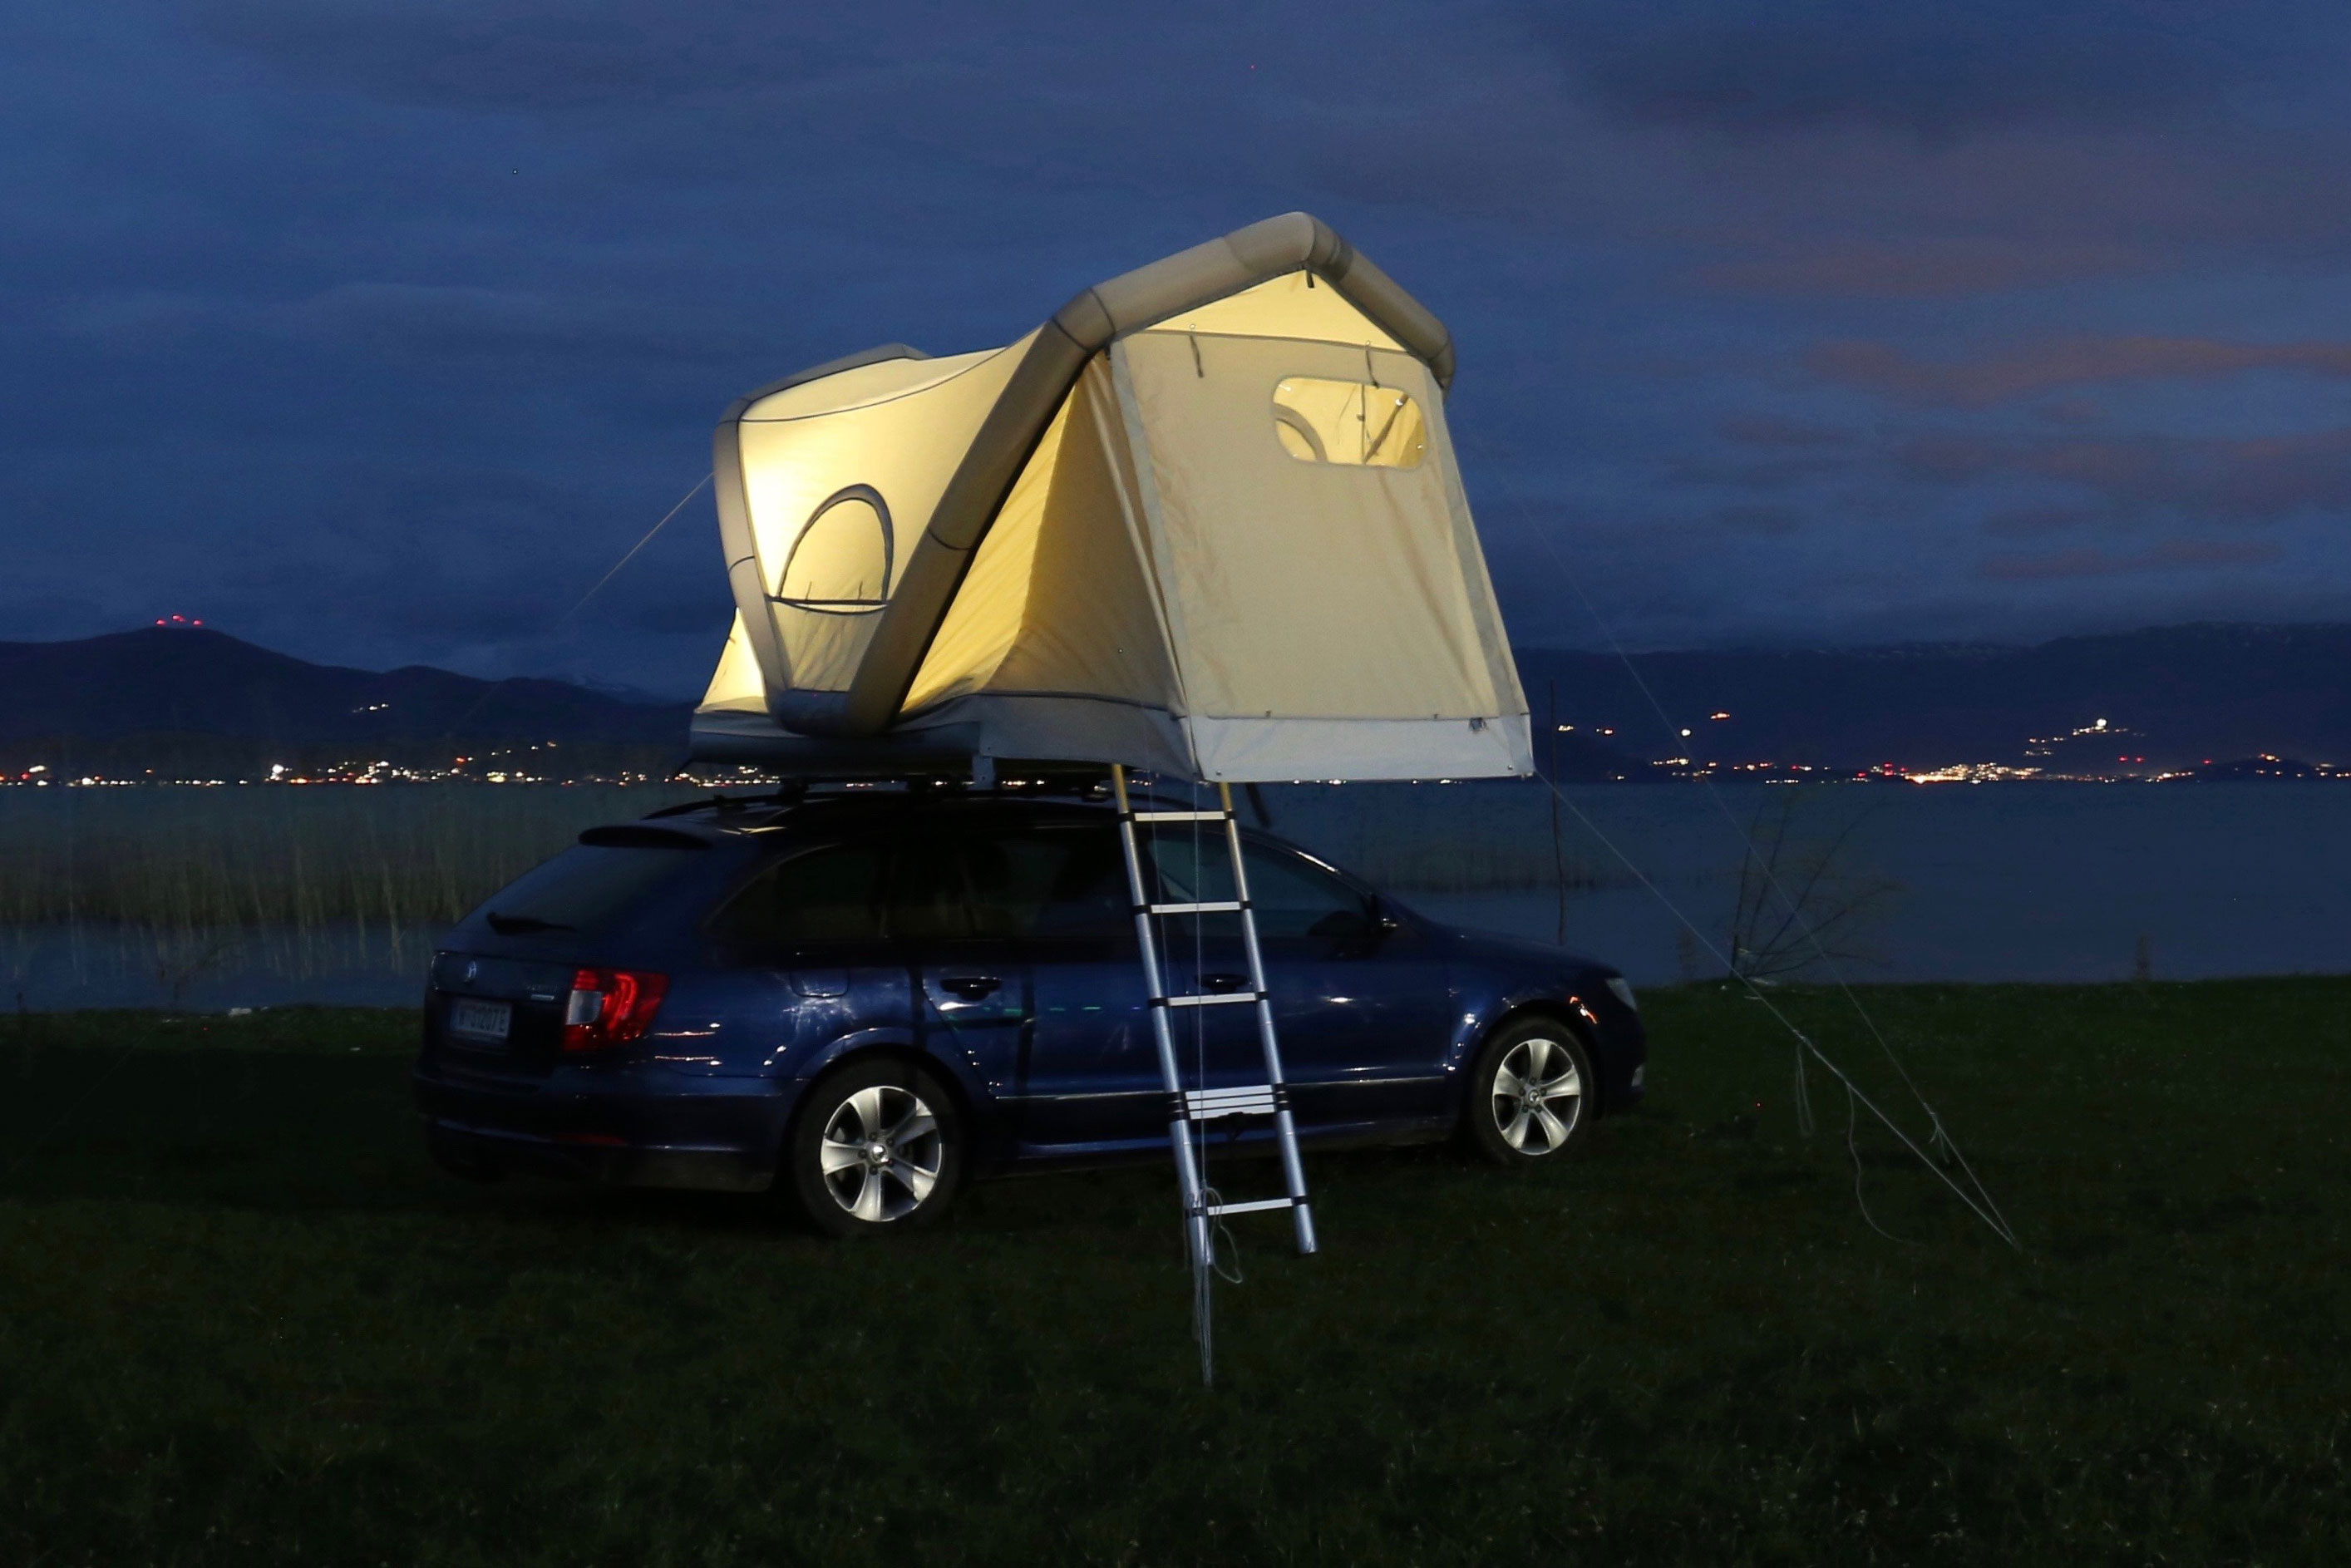 GentleTent inflatable rooftop tent on car